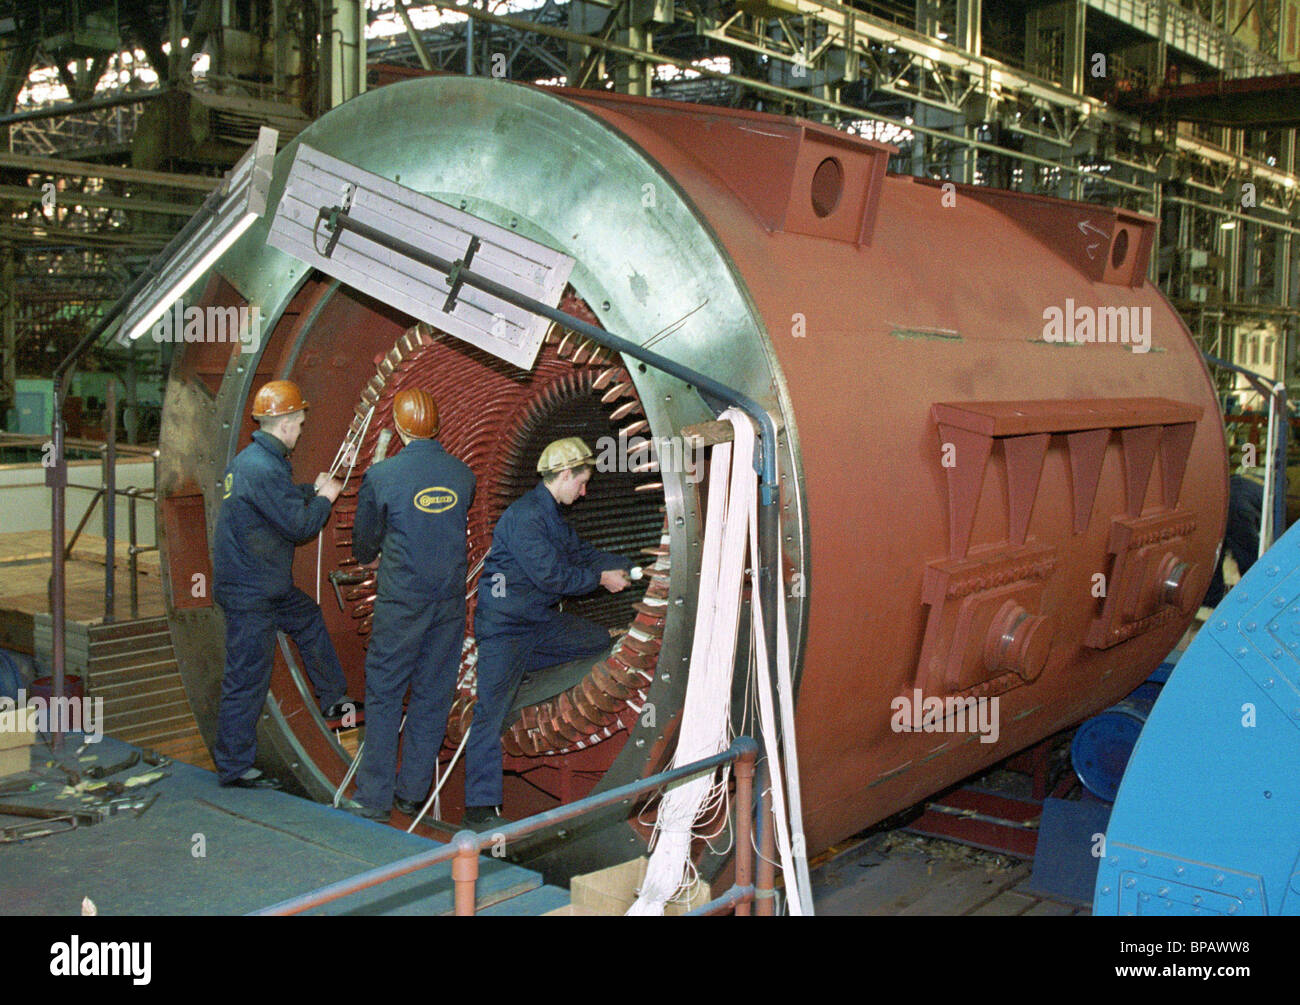 The TF-63 turbo-generator manufactured at the Elsib enterprise - Stock Image